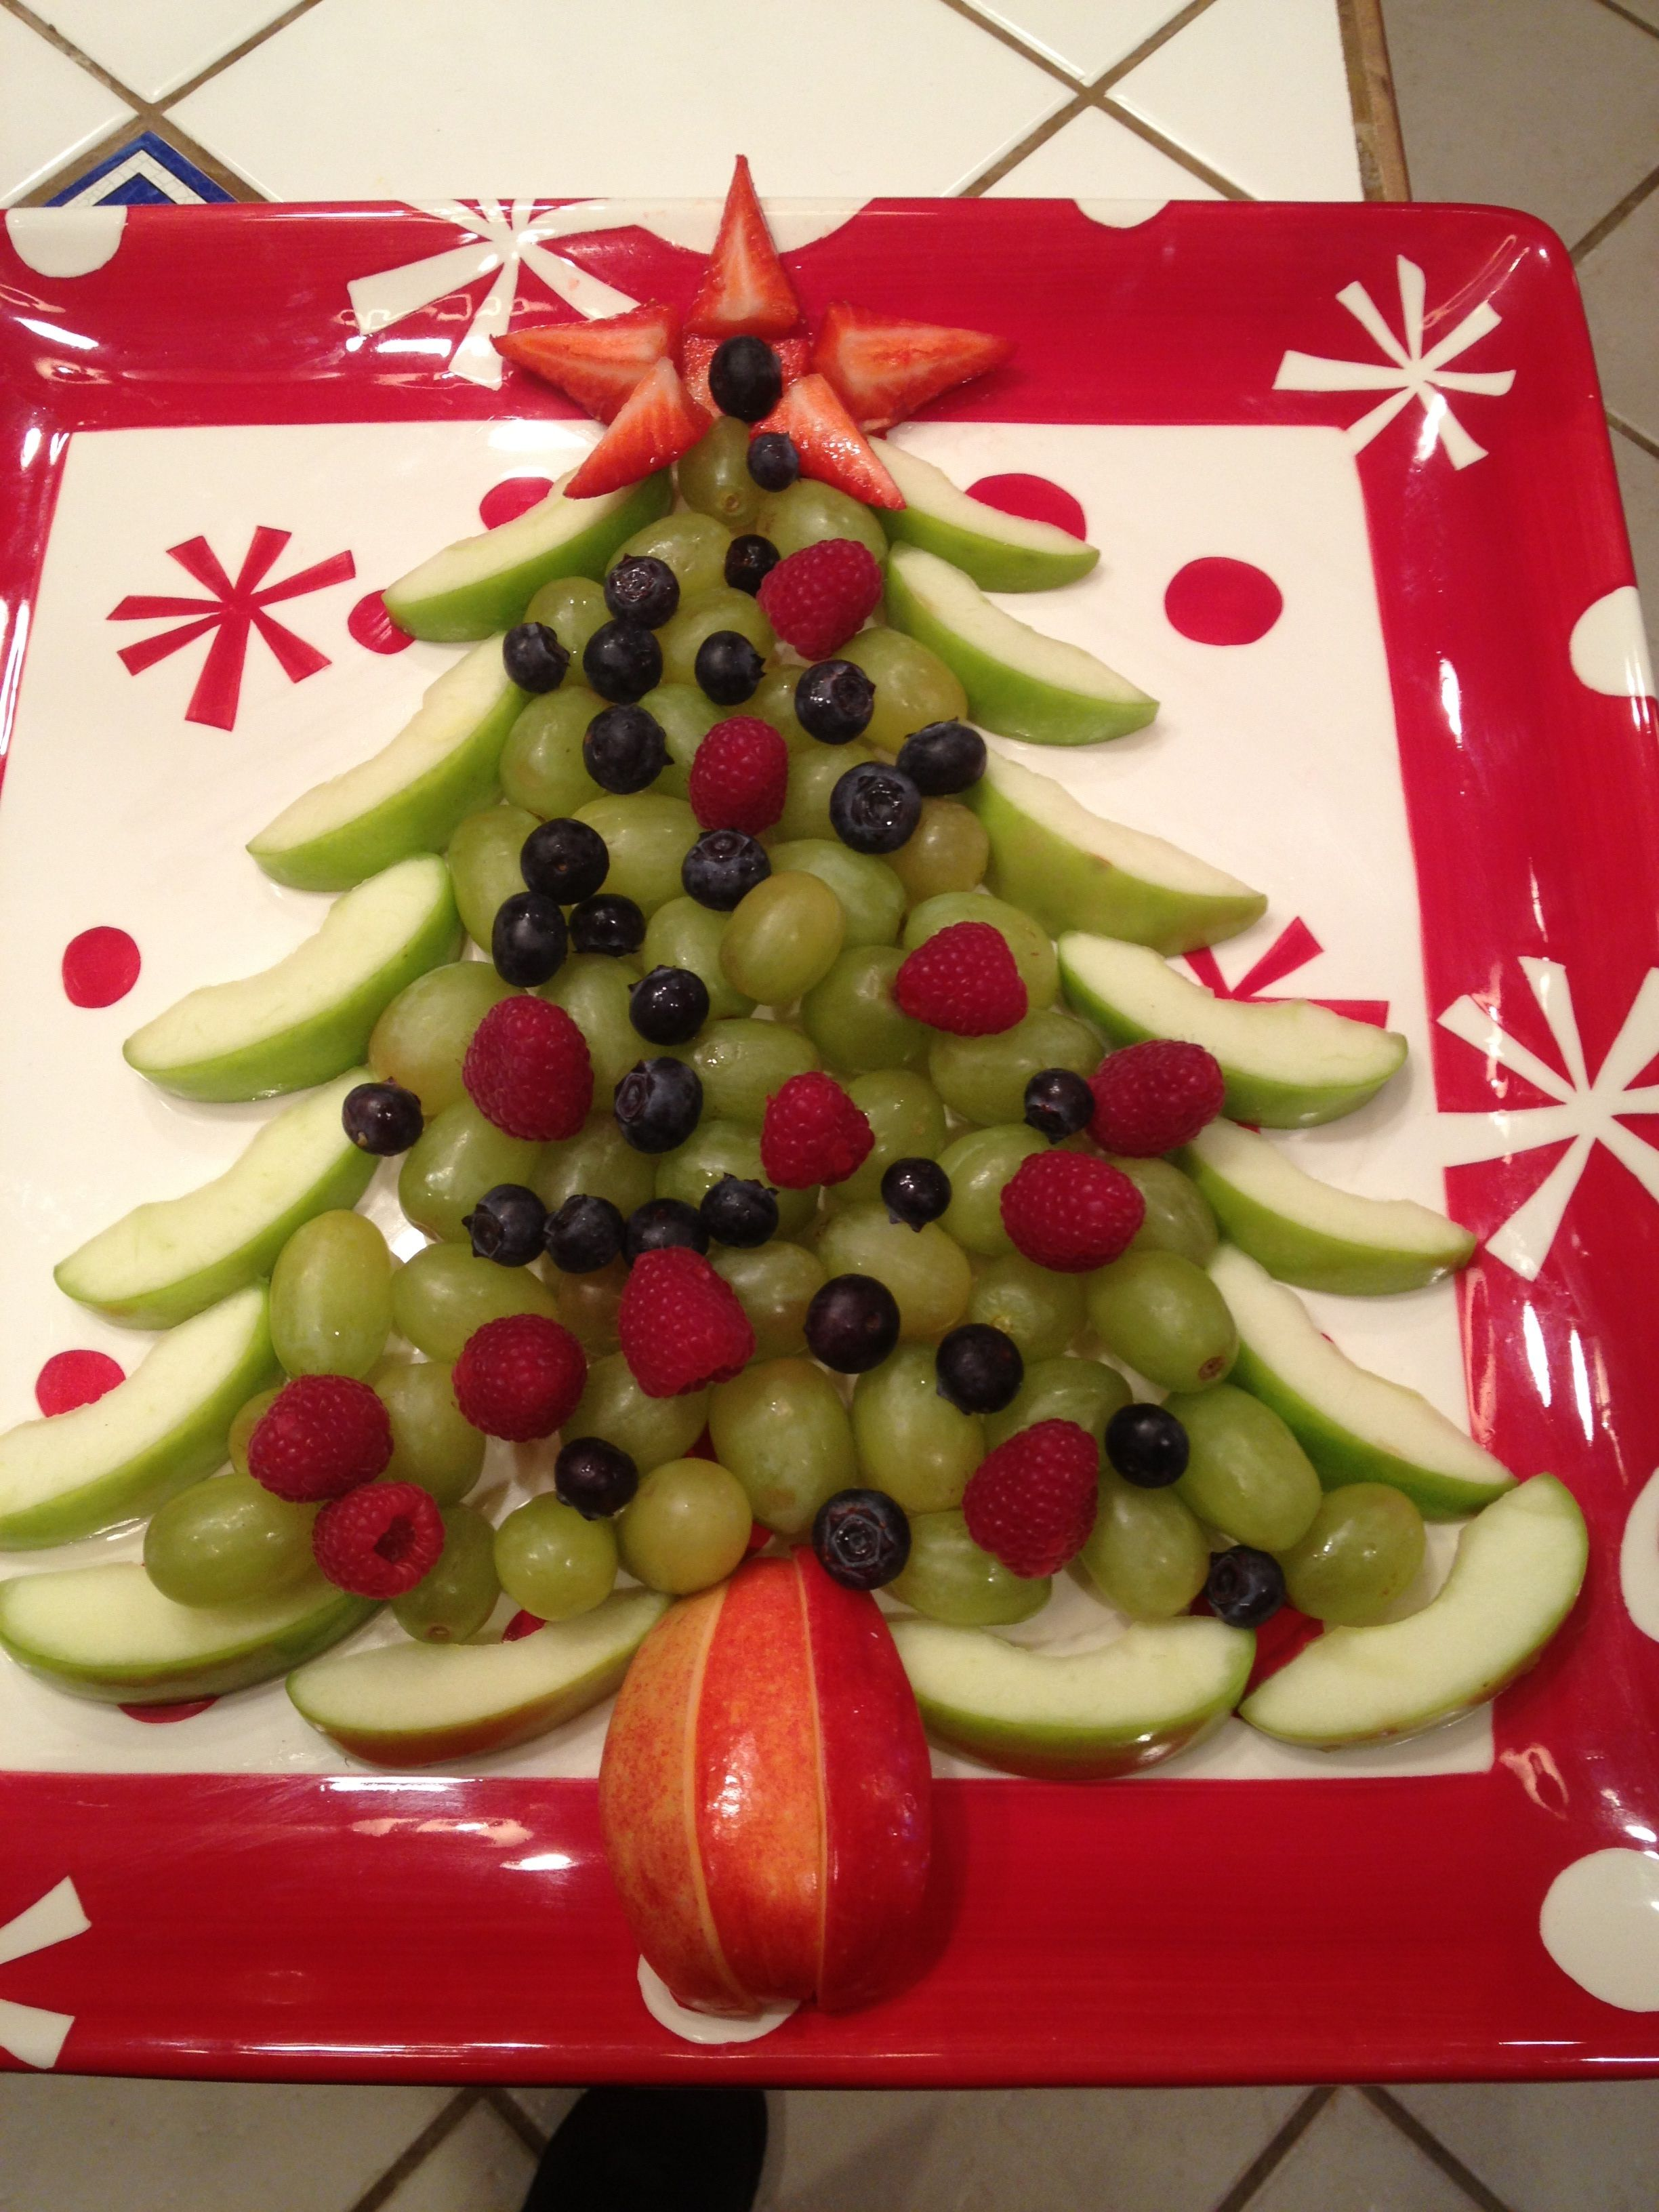 Fruit over the door christmas decoration - Christmas Fruit Tree Healthy And Pretty